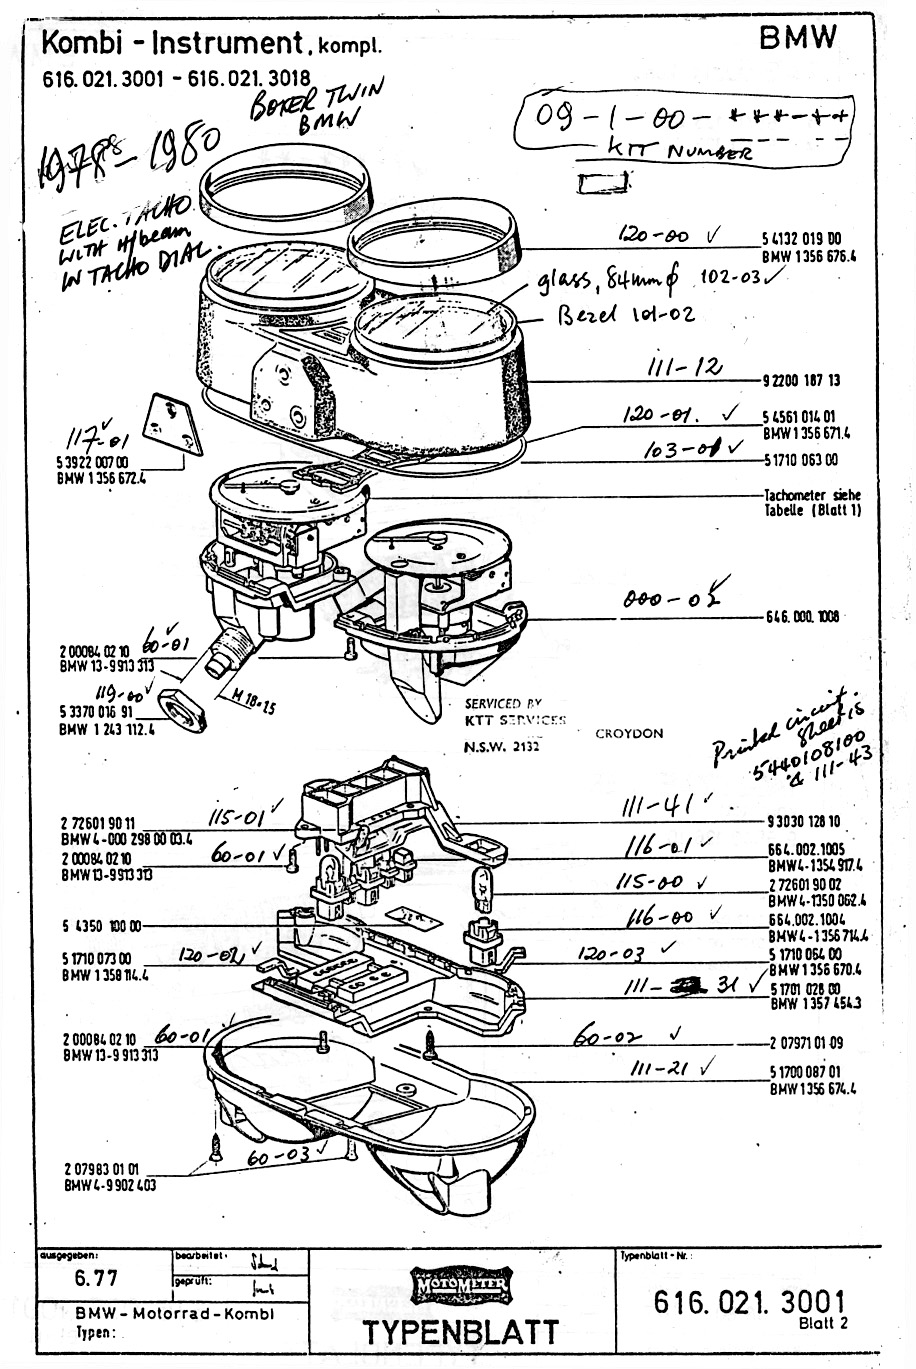 1977 Bmw R100rs Motorcycles Wiring Diagram GMC Wiring